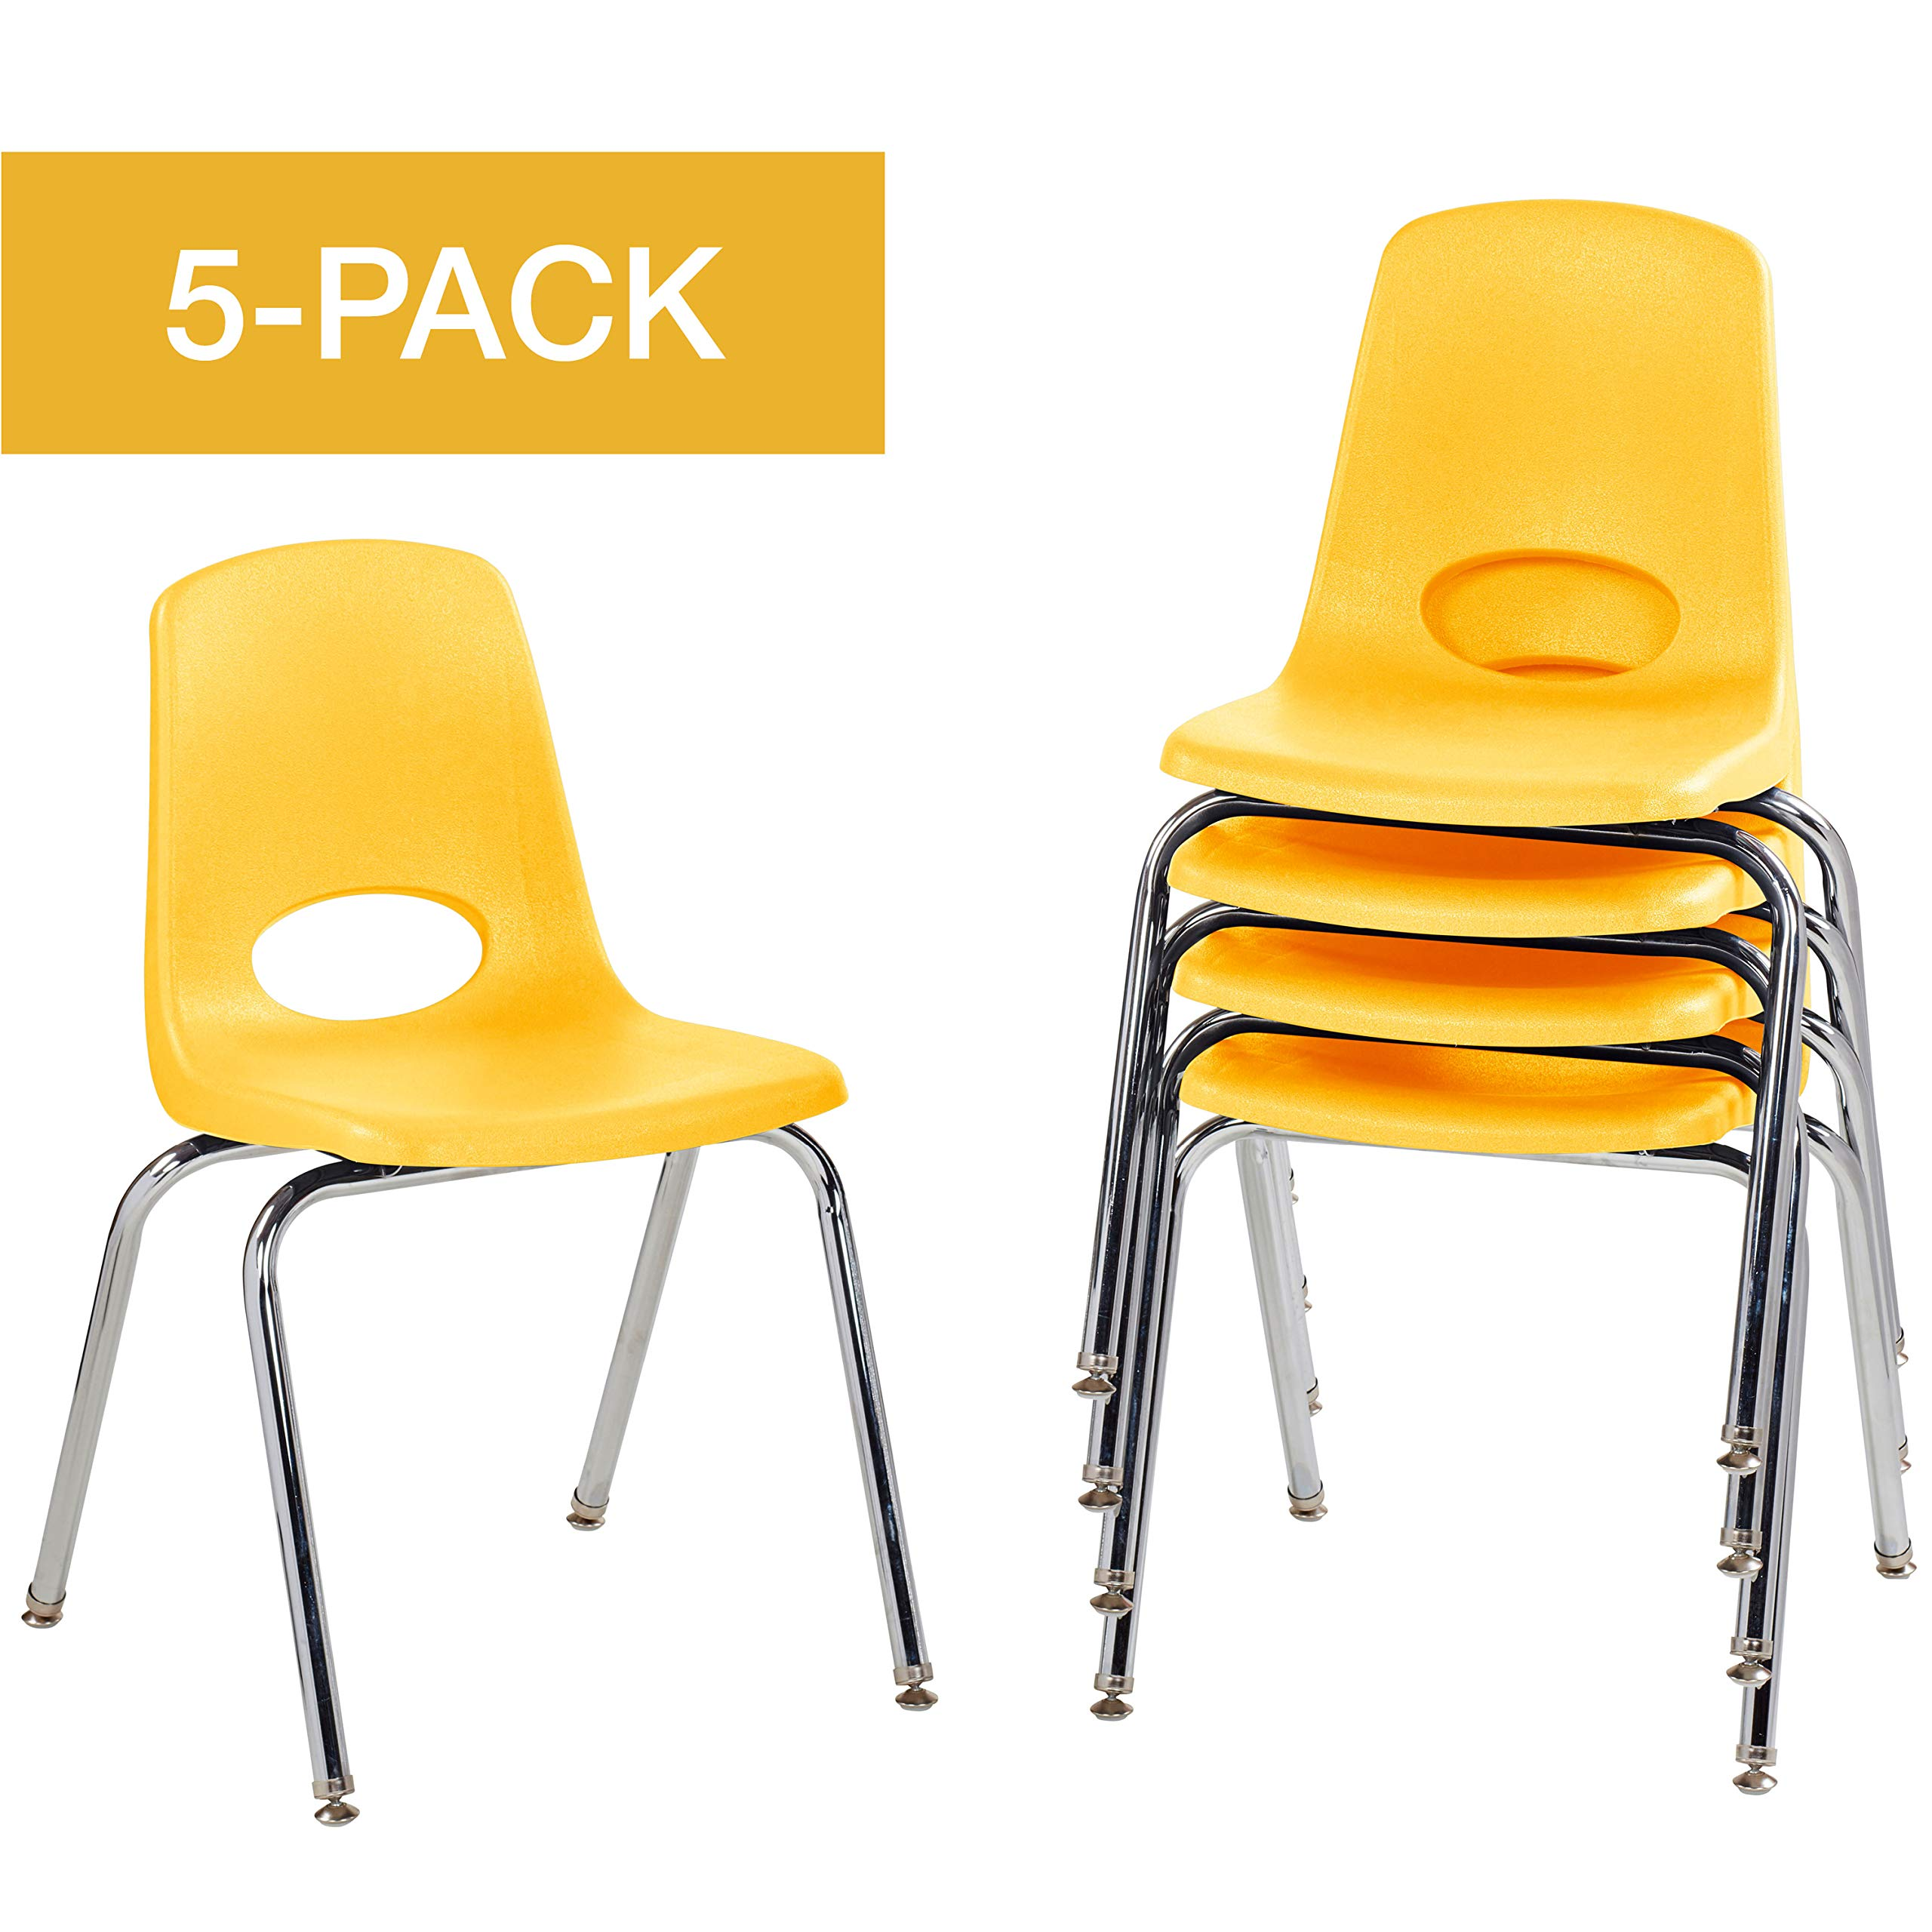 18'' School Stack Chair,Stacking Student Chairs with Chromed Steel Legs and Nylon Swivel Glides - Yellow (5-Pack)